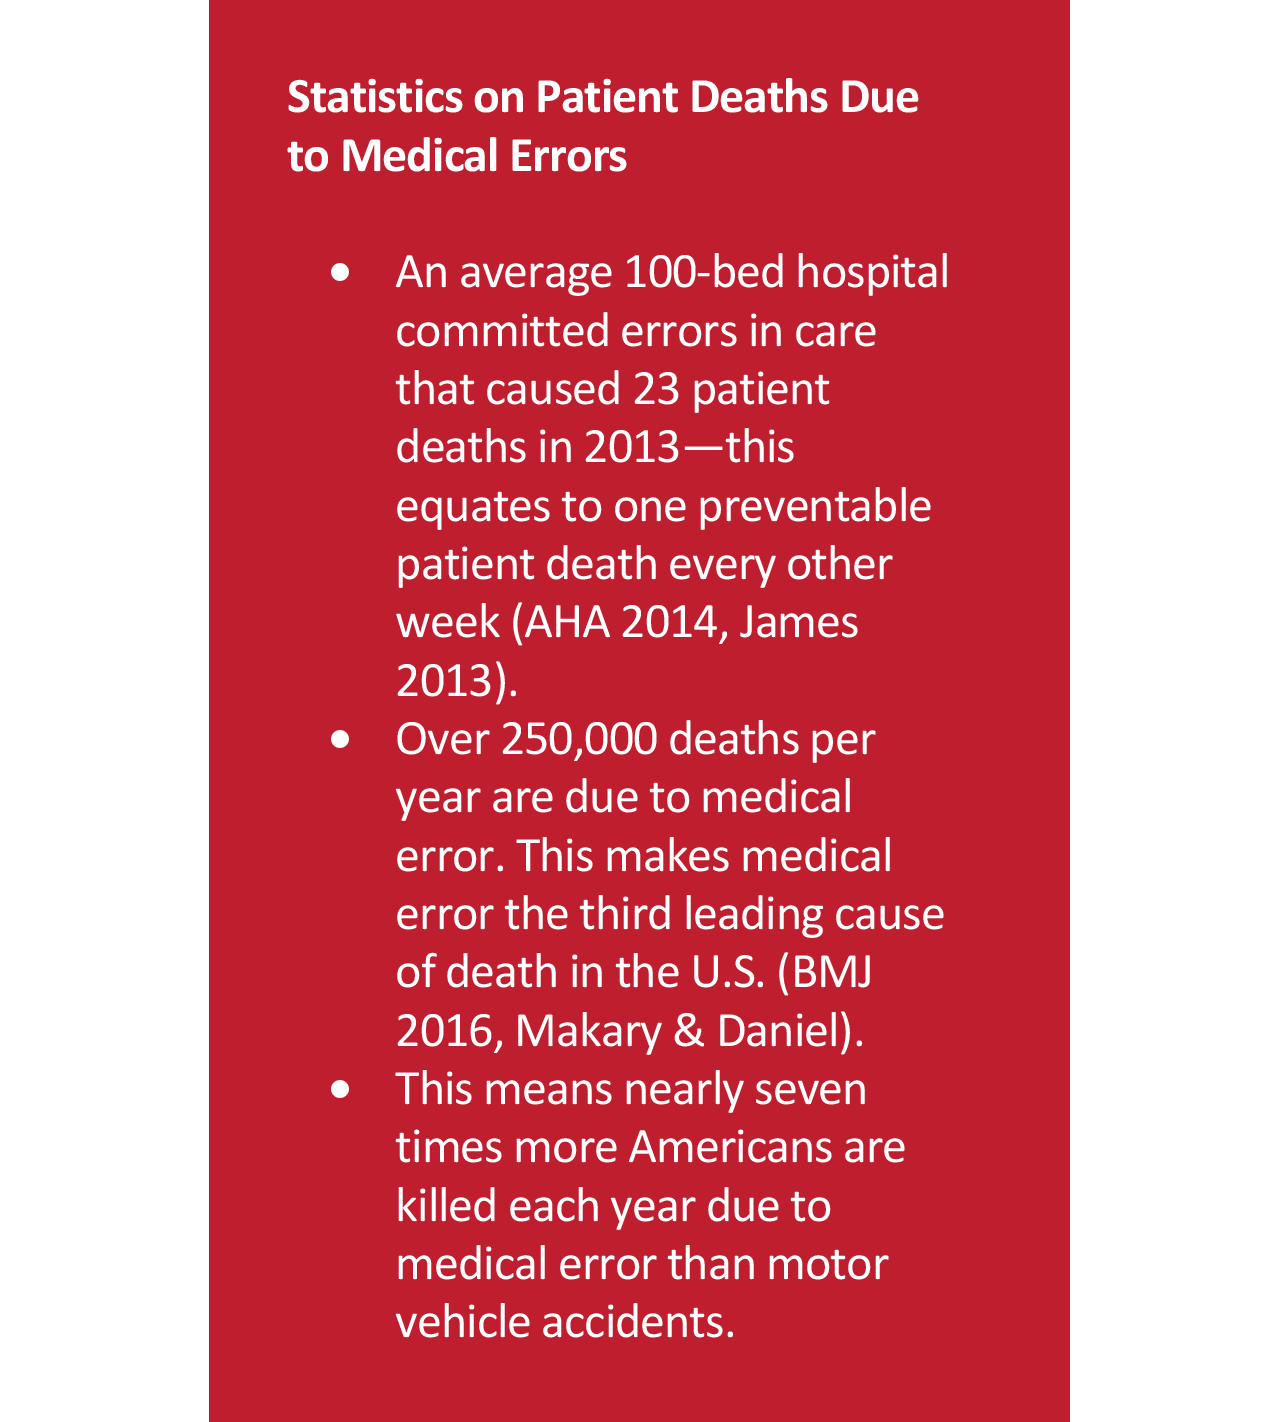 Statistics on Patient Deaths Due to Medical Errors